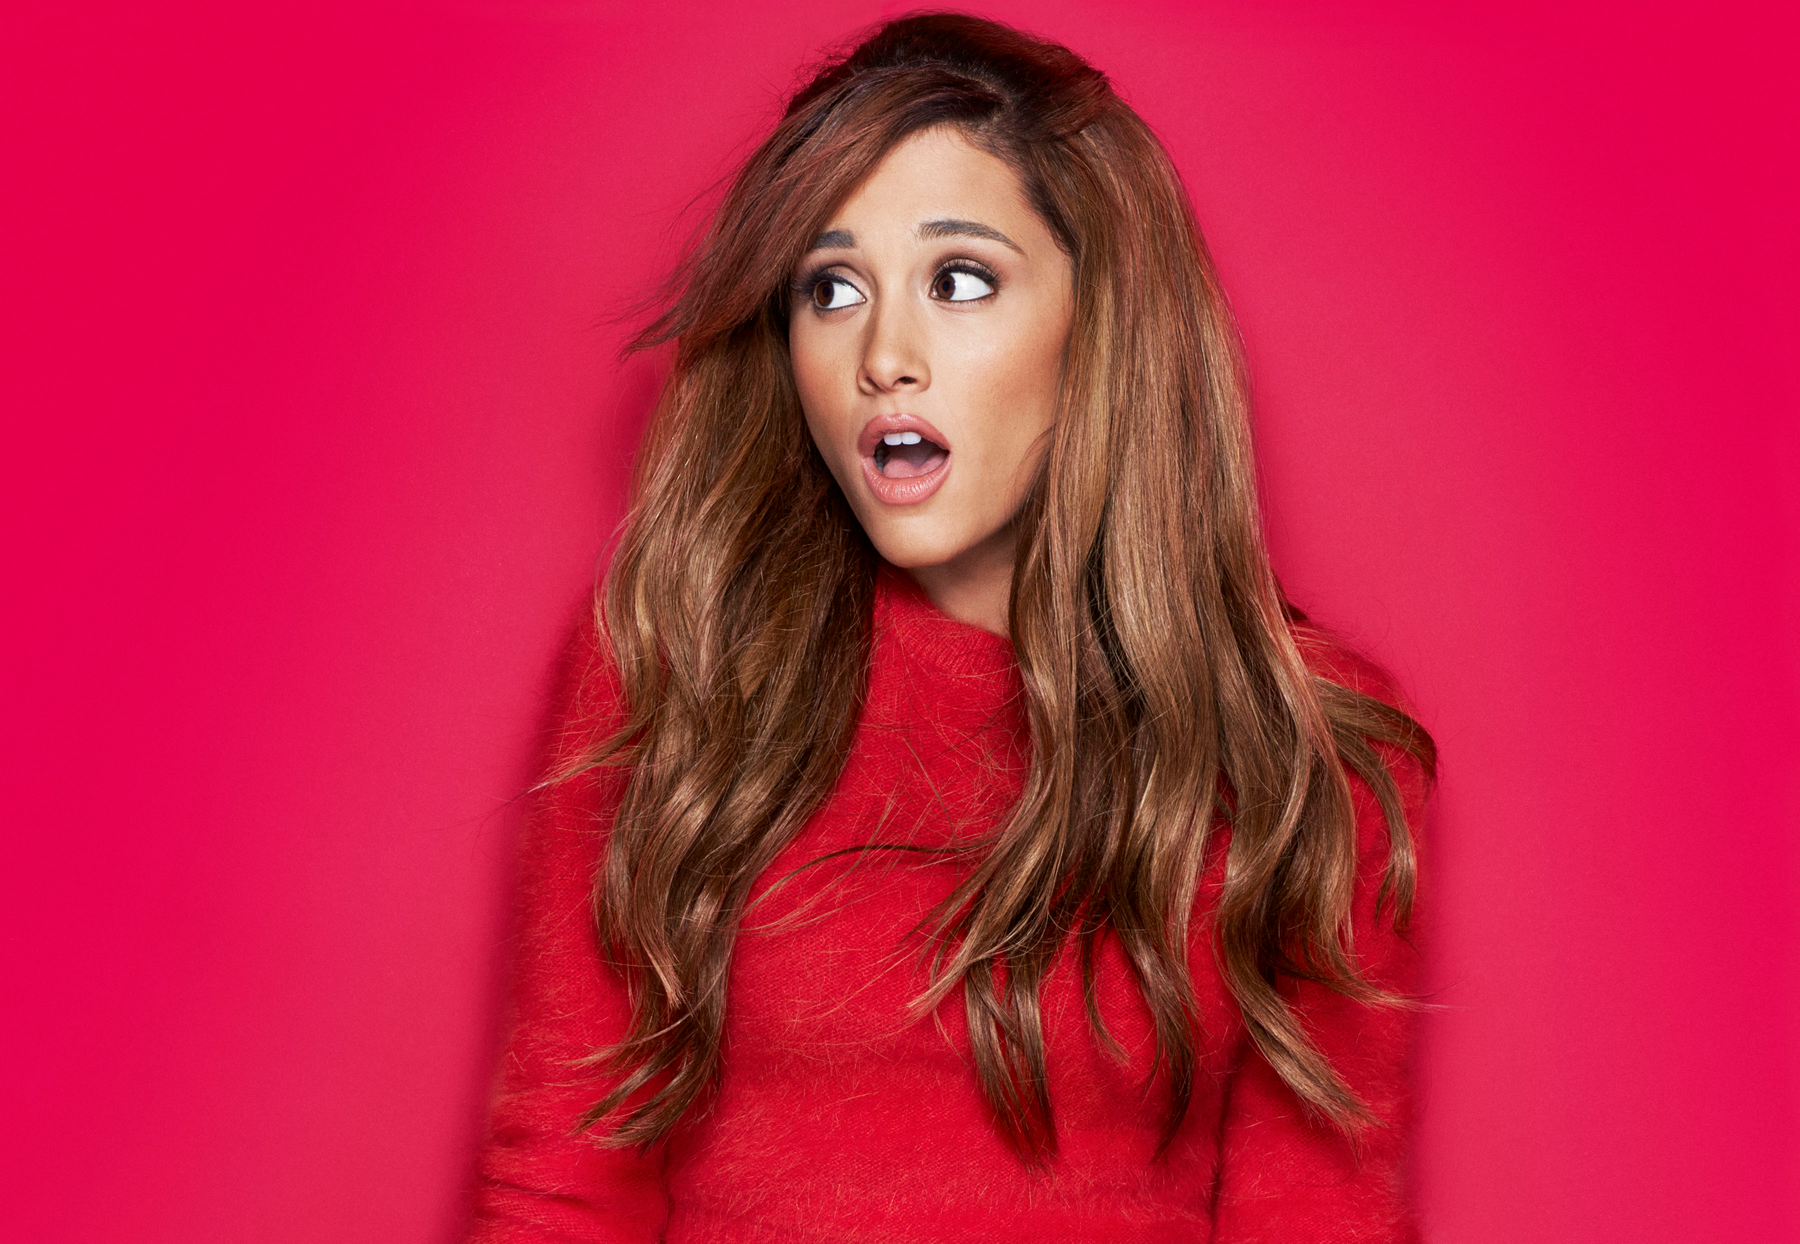 ... Wallpaper Ariana Grande Wallpaper